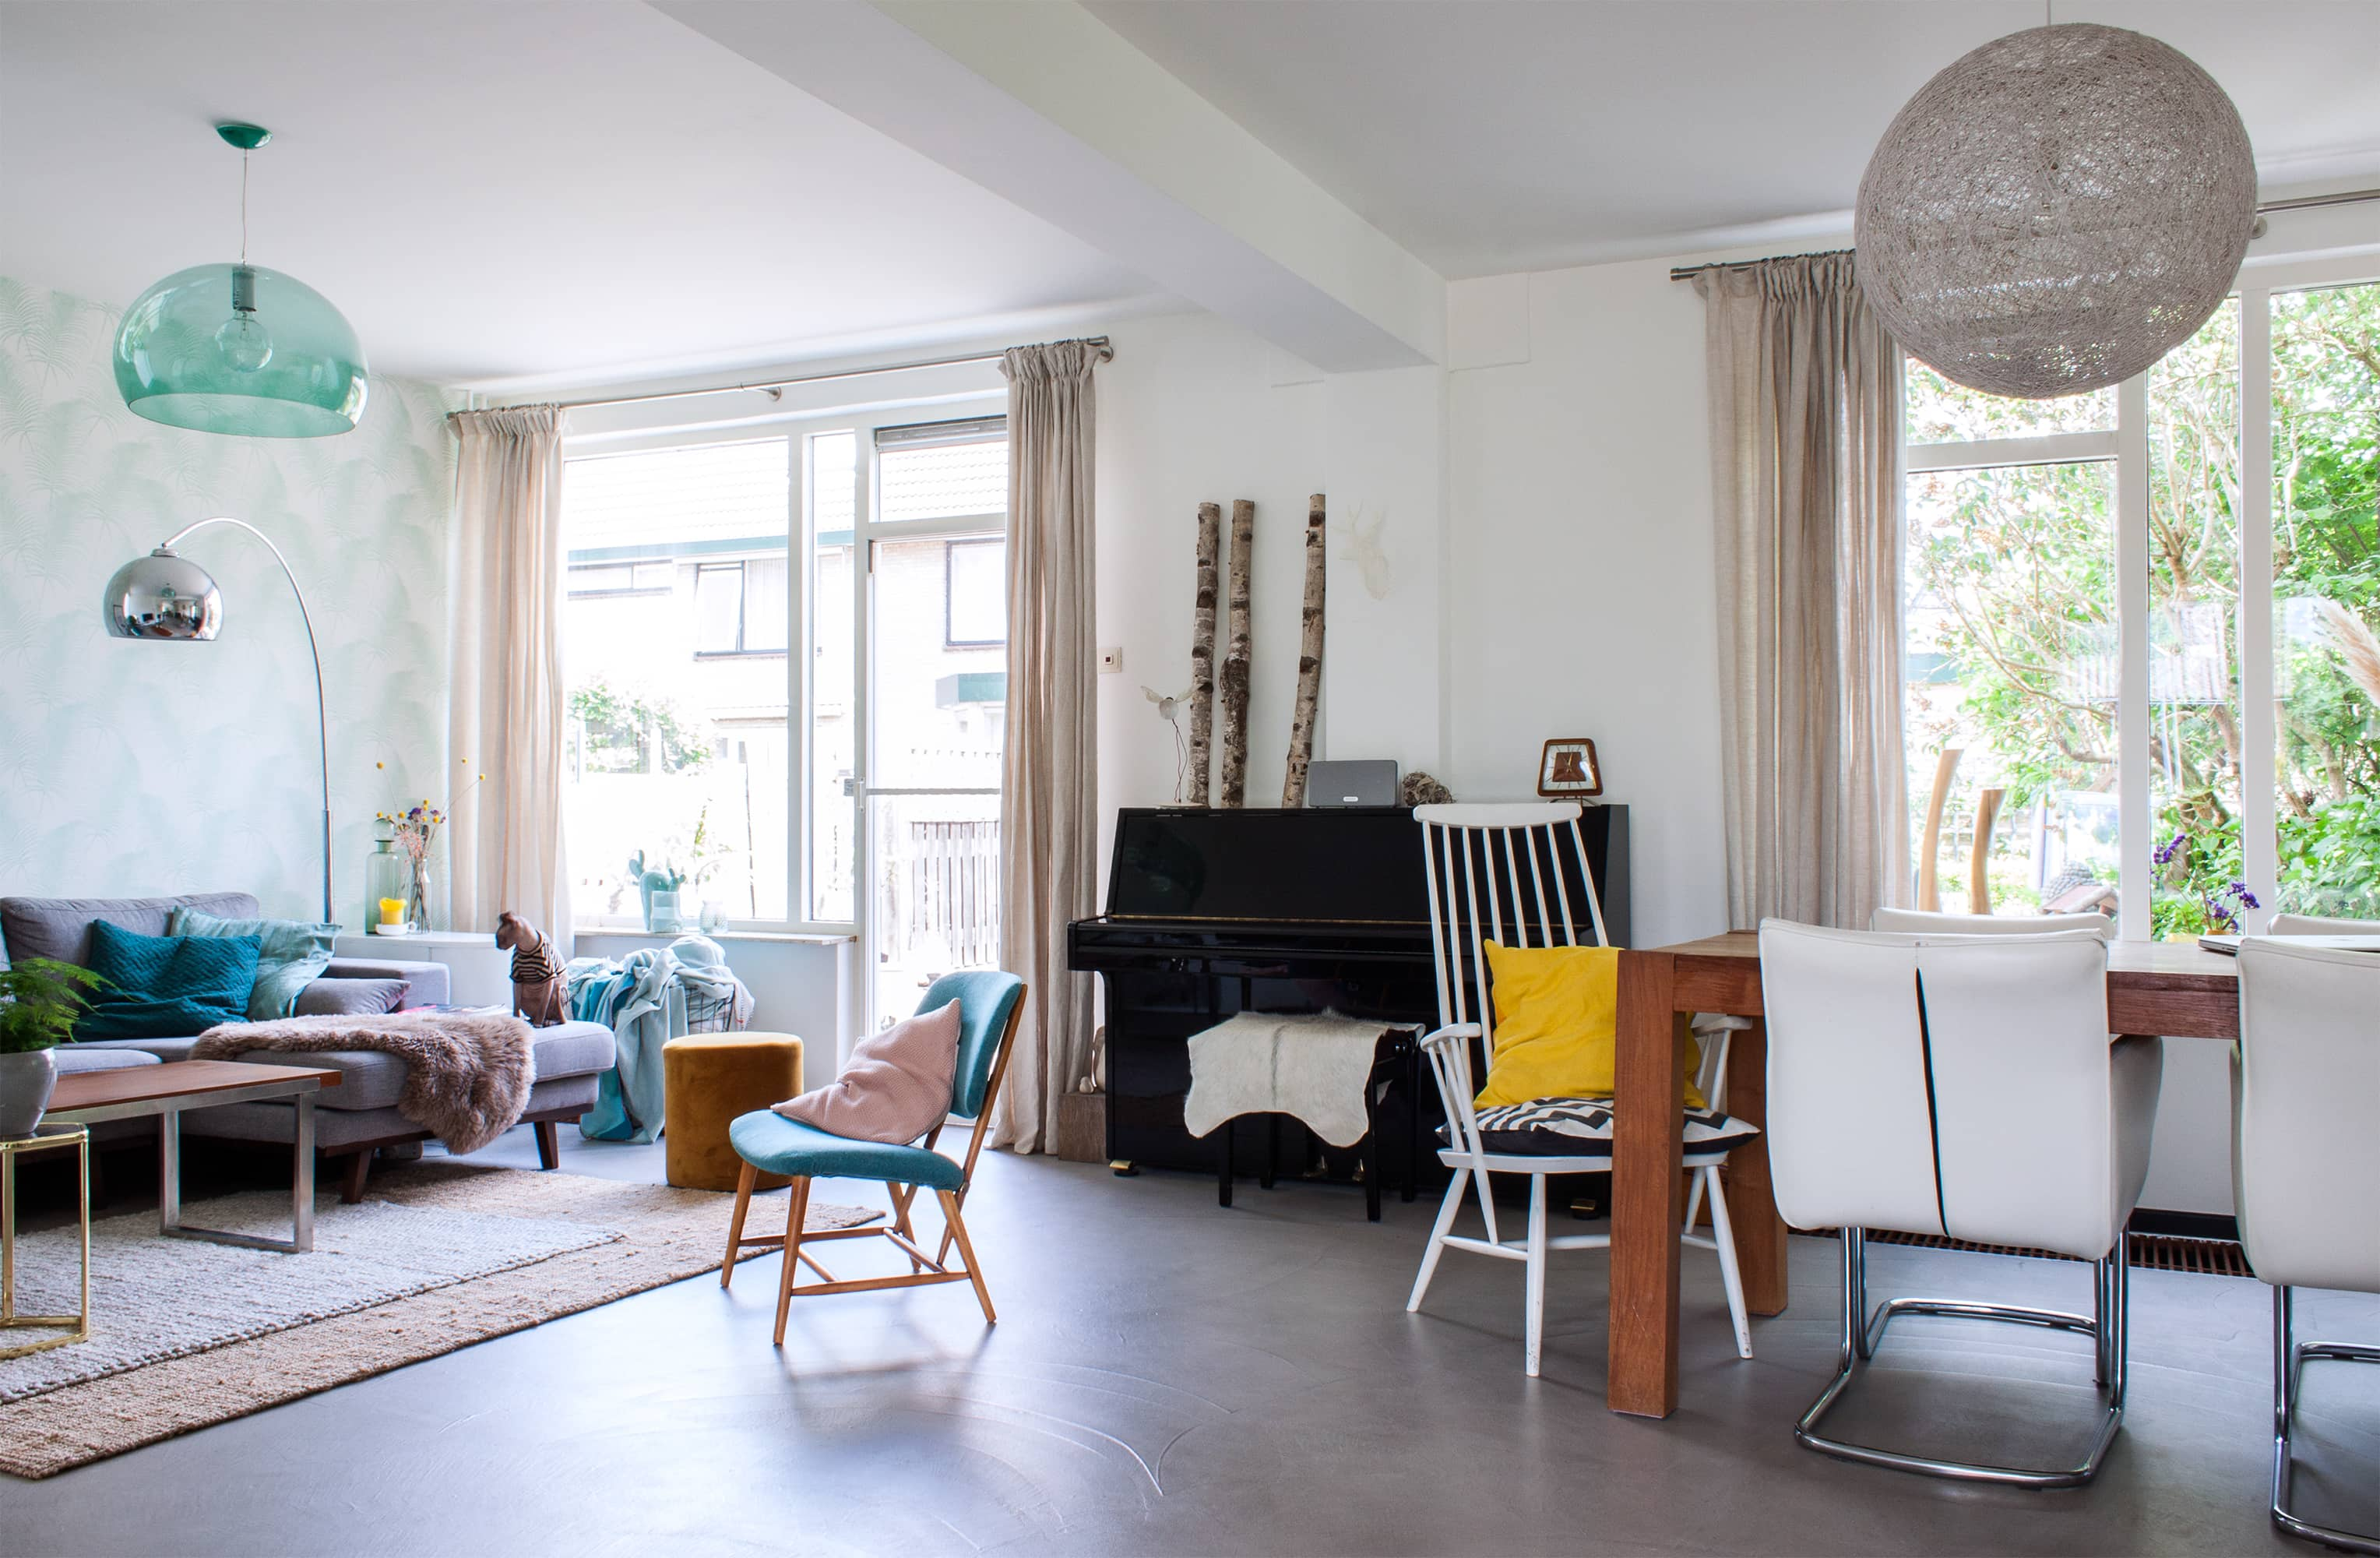 A dutch interior stylist reinvents her childhood home gallery image 9